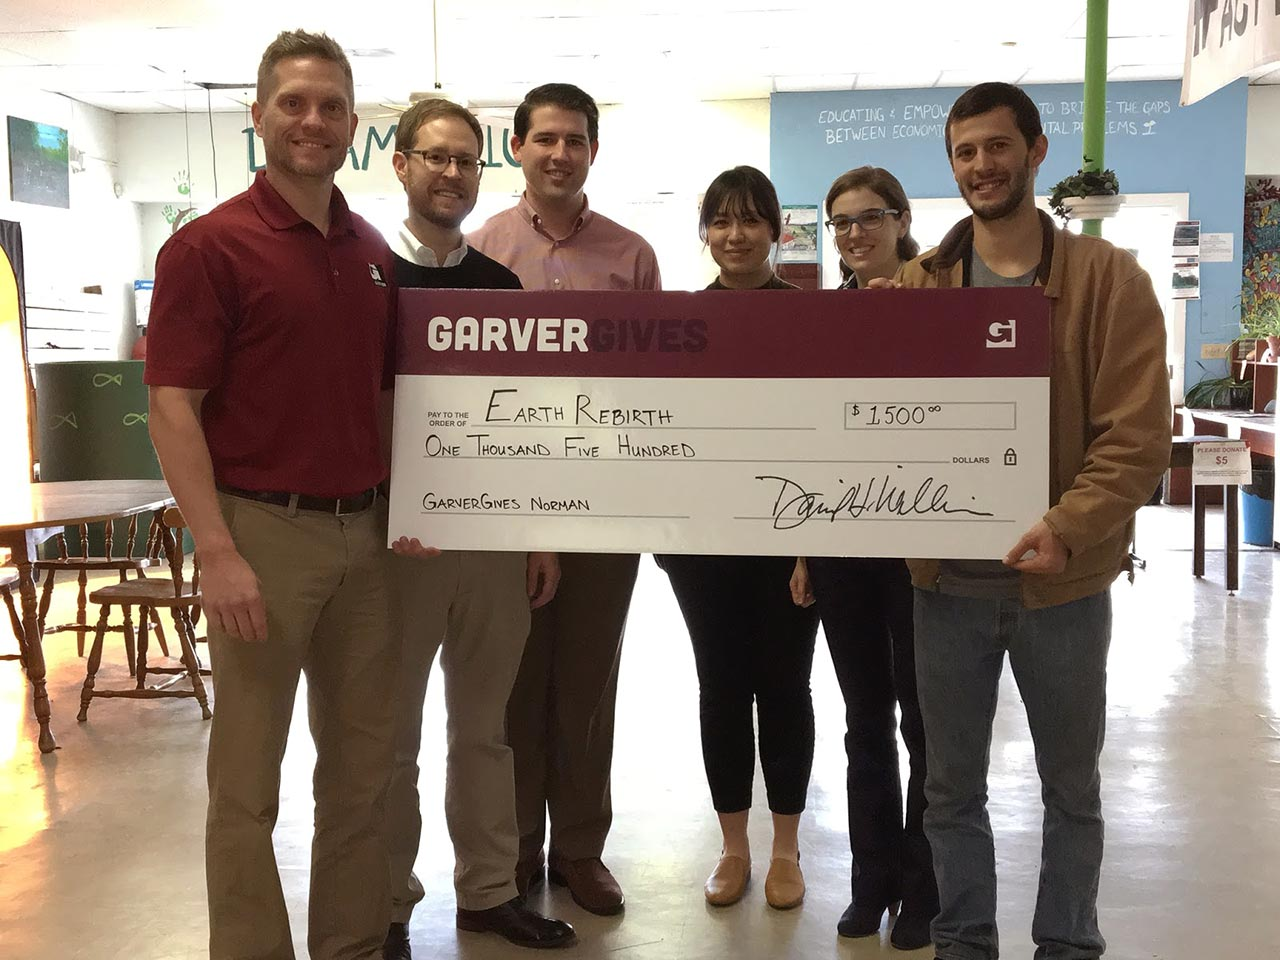 GarverGives donation aids school garden program